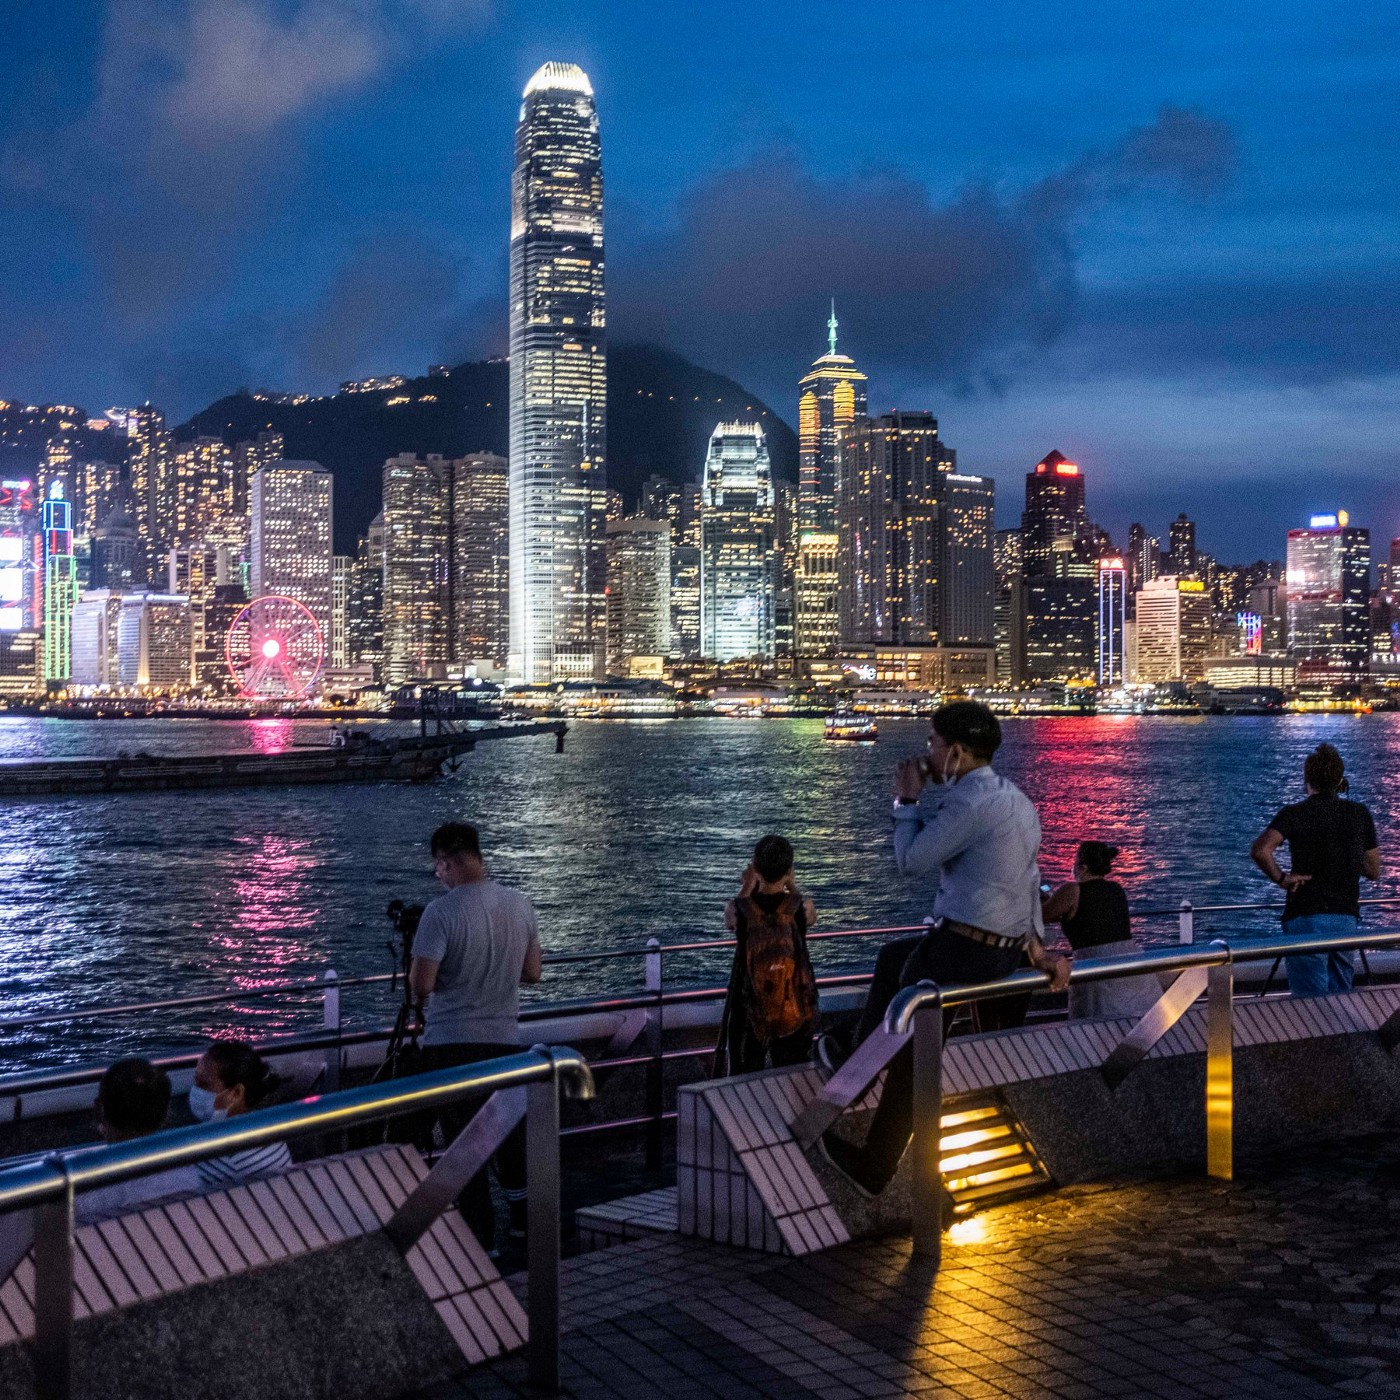 U.S. to sanction Chinese officials over Hong Kong